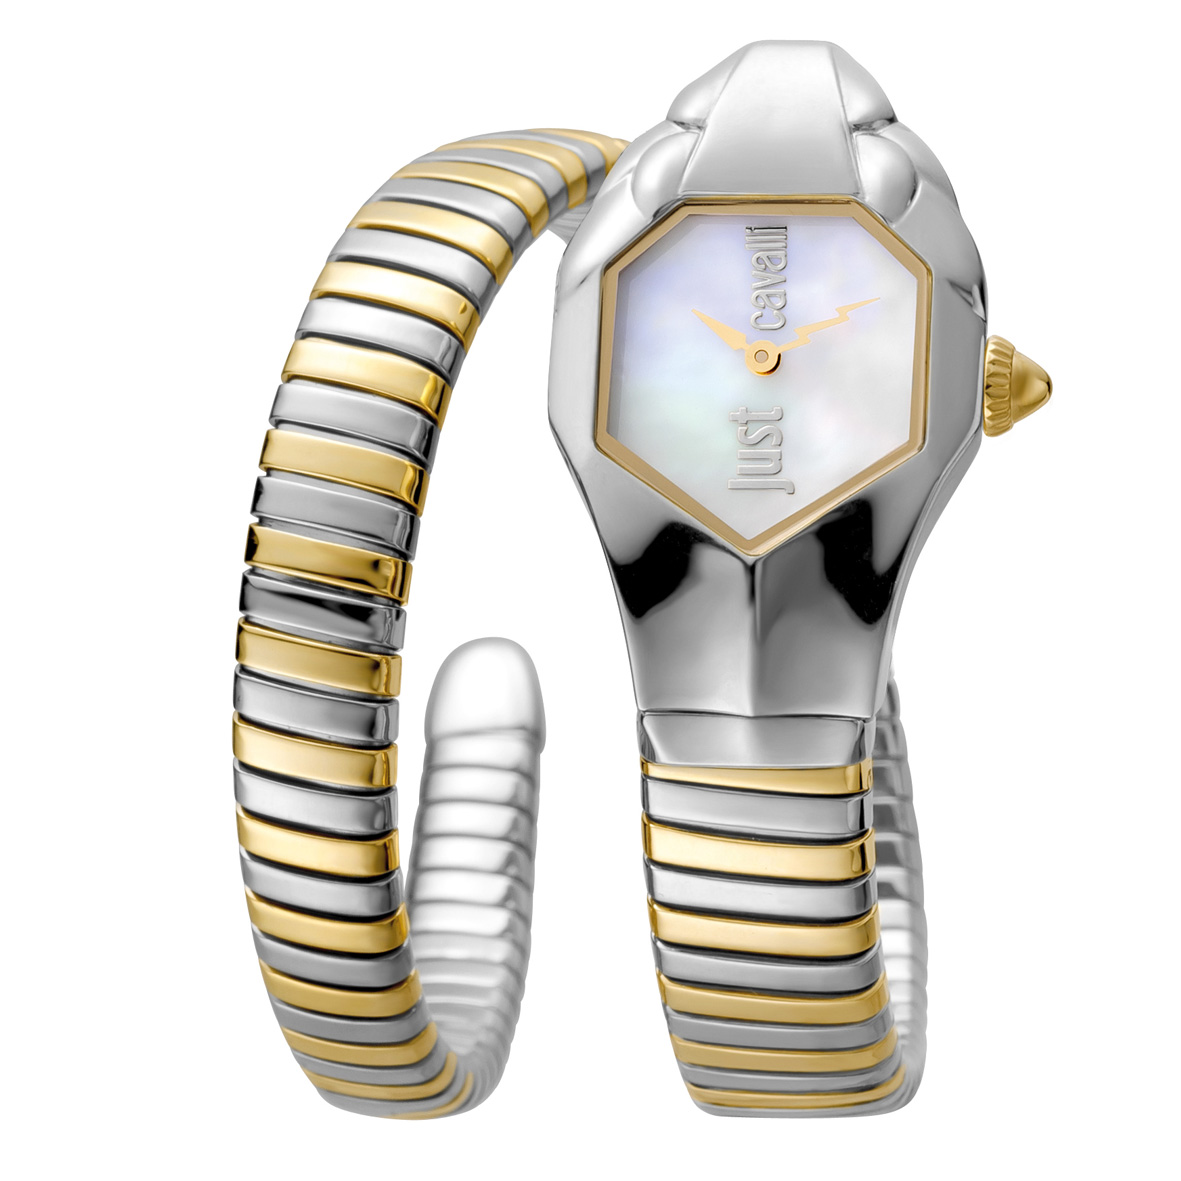 JCW1L001M0035_just-cavalli_watches.jpg